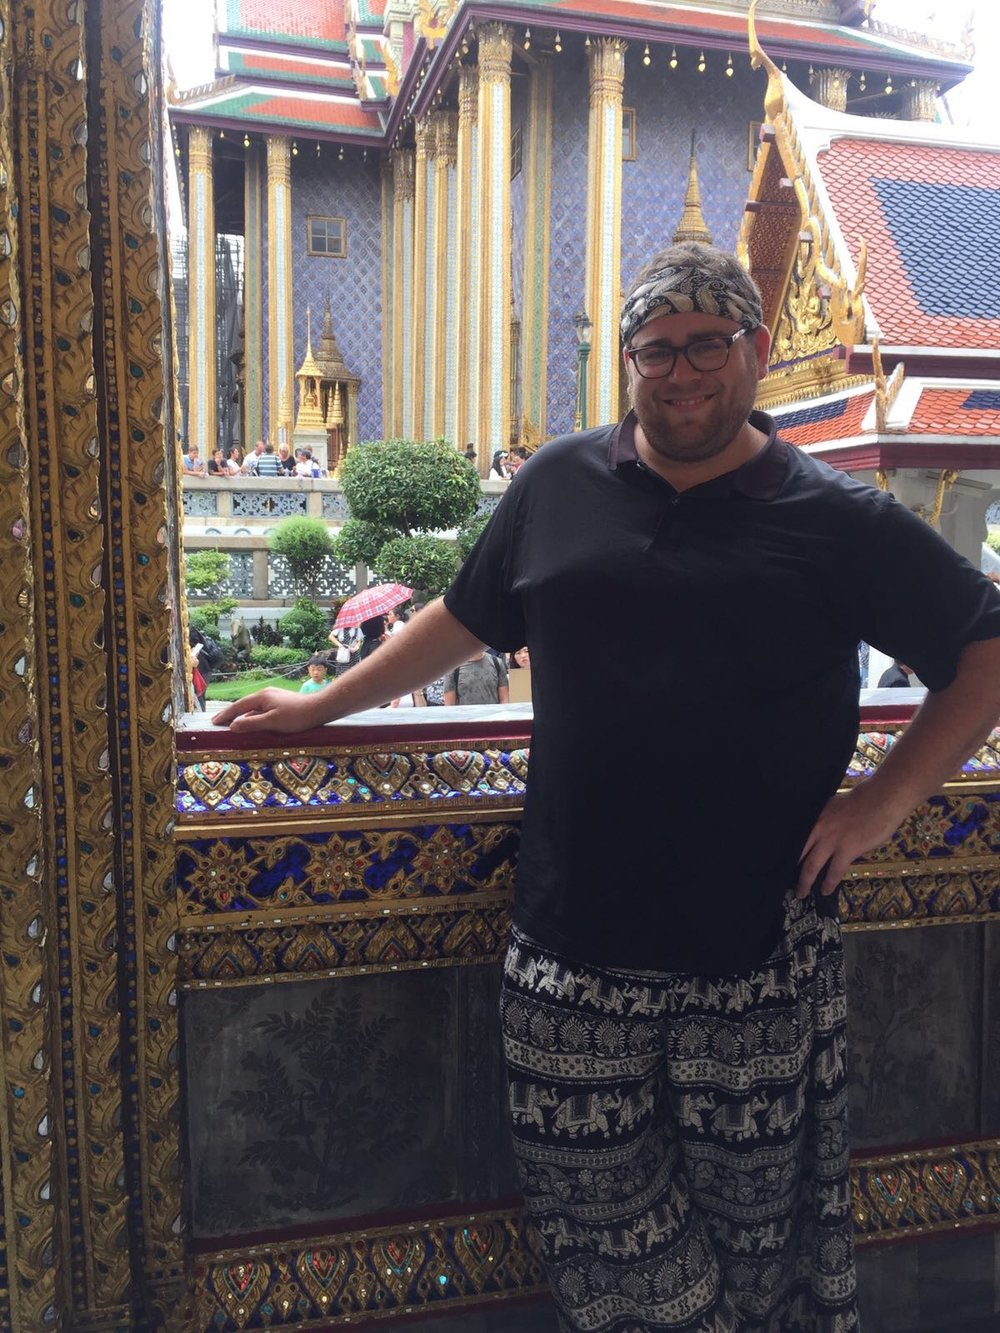 Adrian sporting his new Mandala Harem pants at the Temple of the Emerald Buddha.